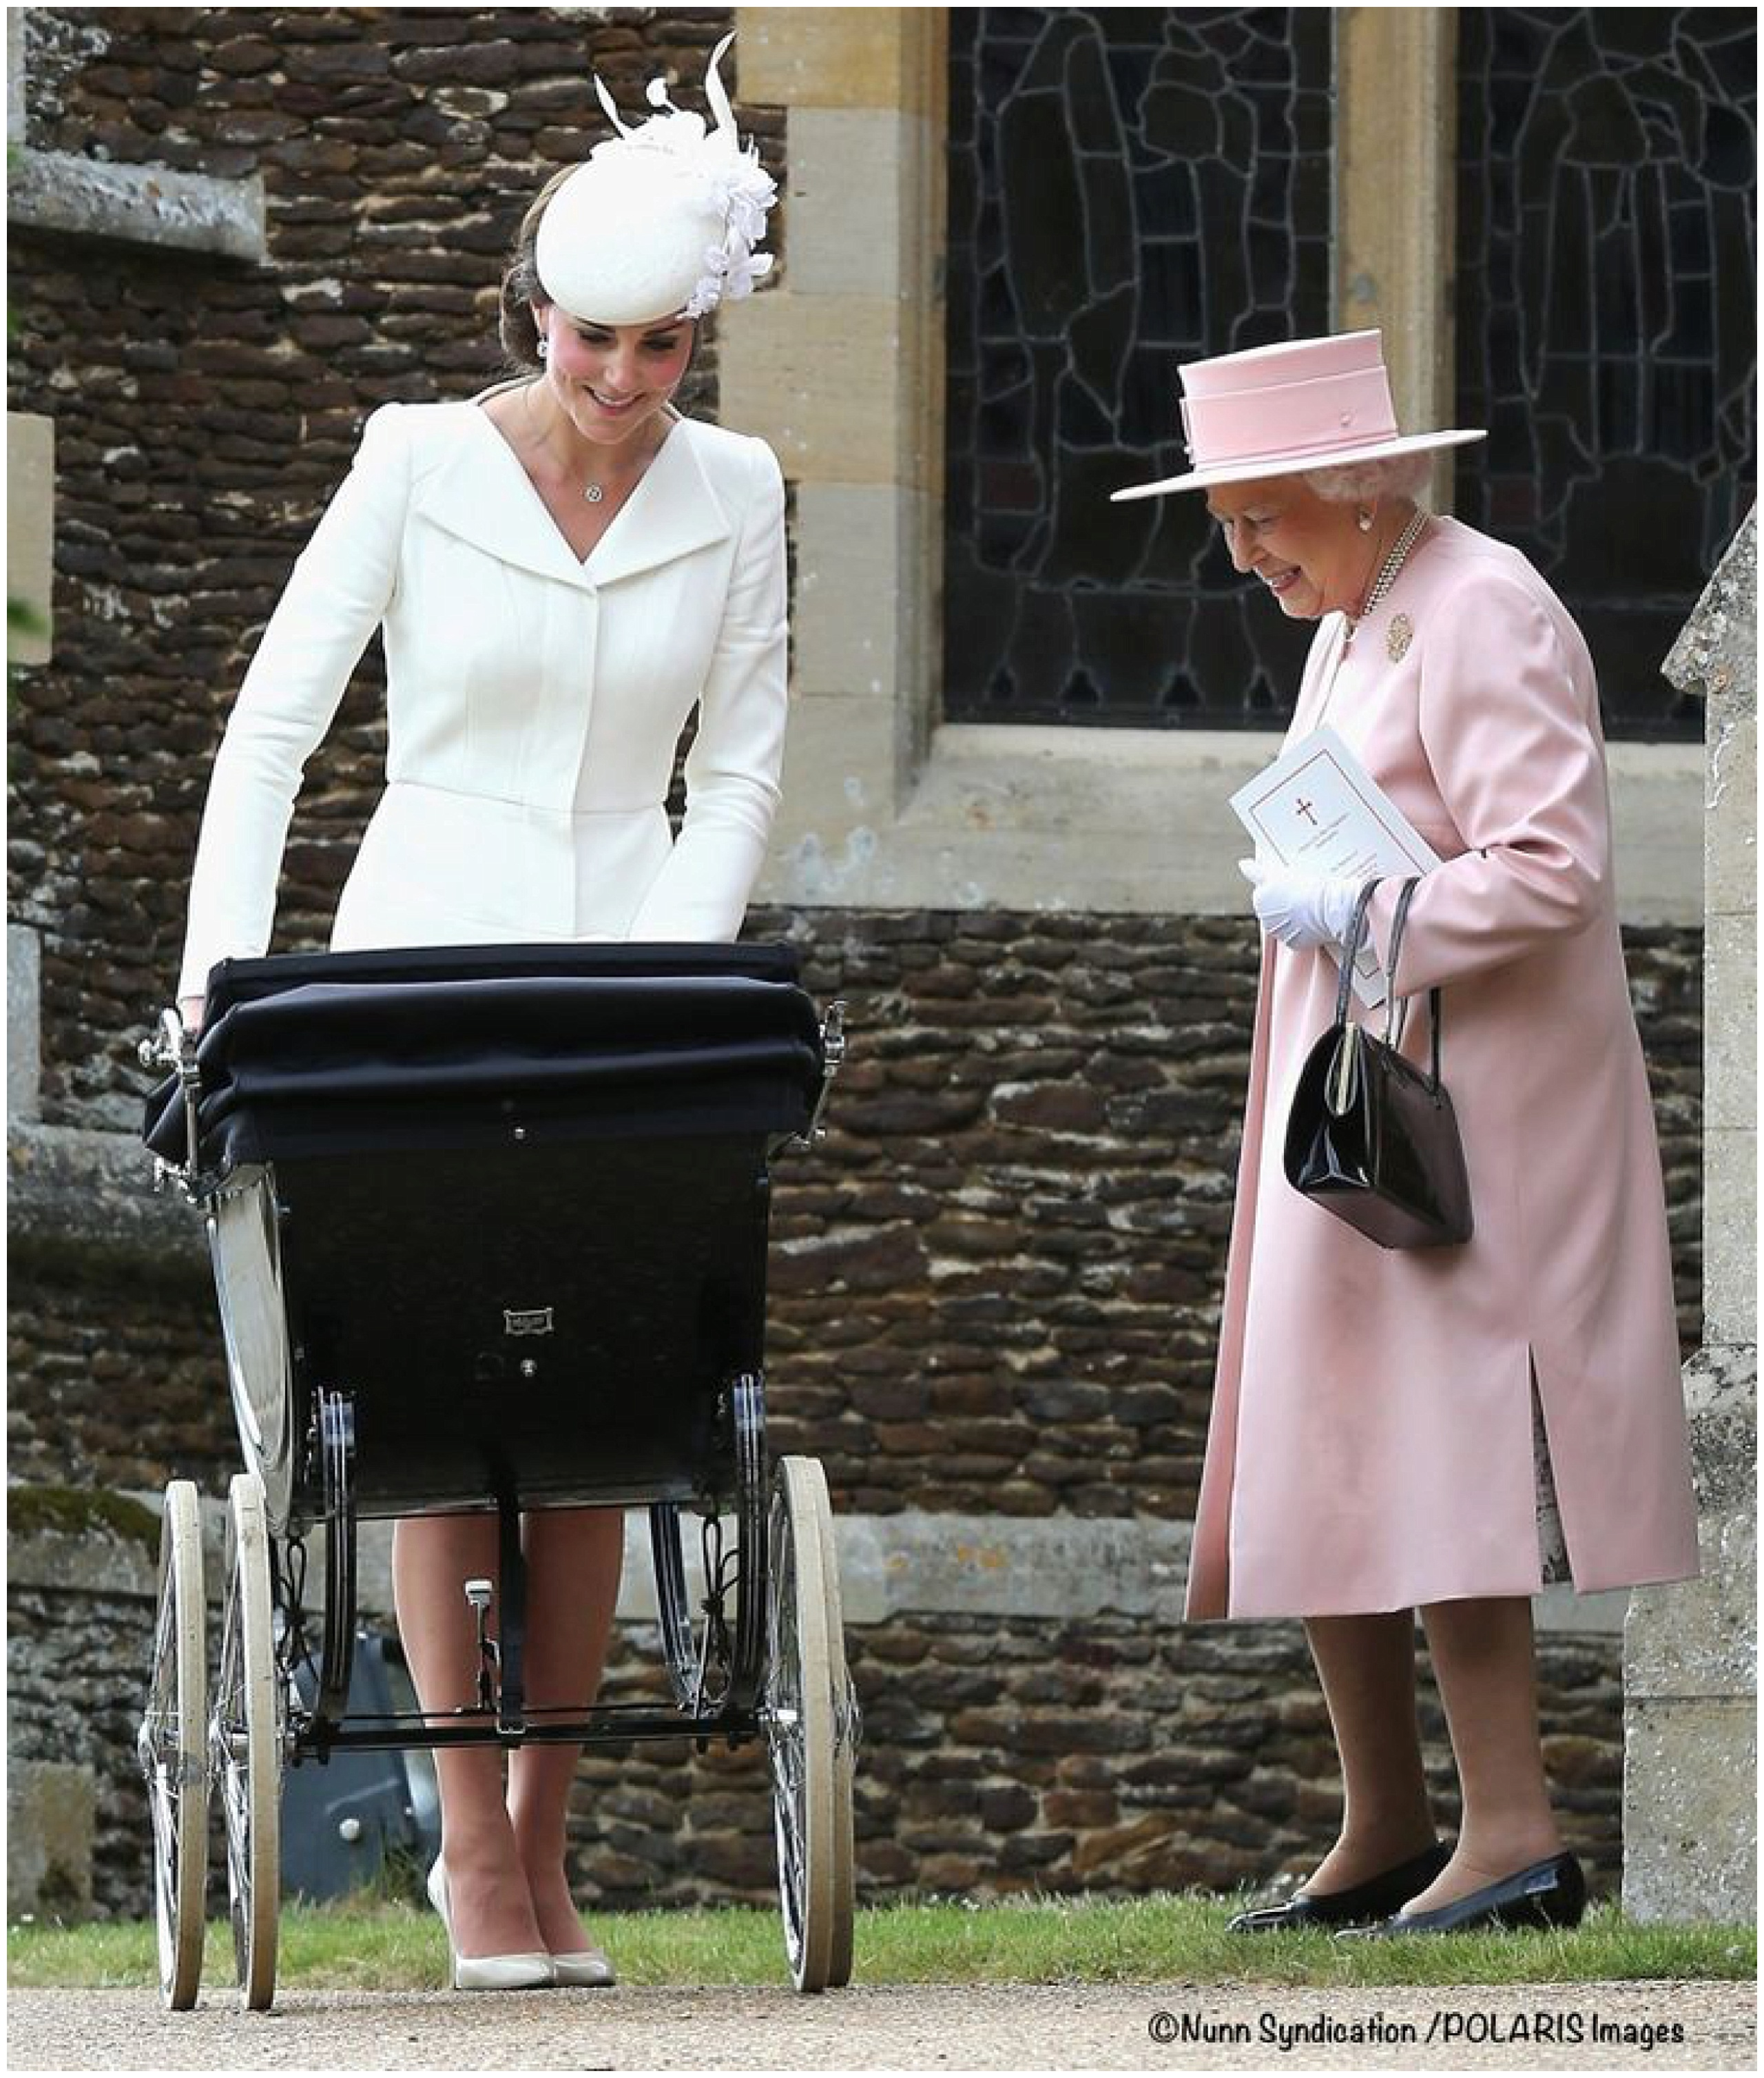 Christening in style: Dressing for a family Occasion